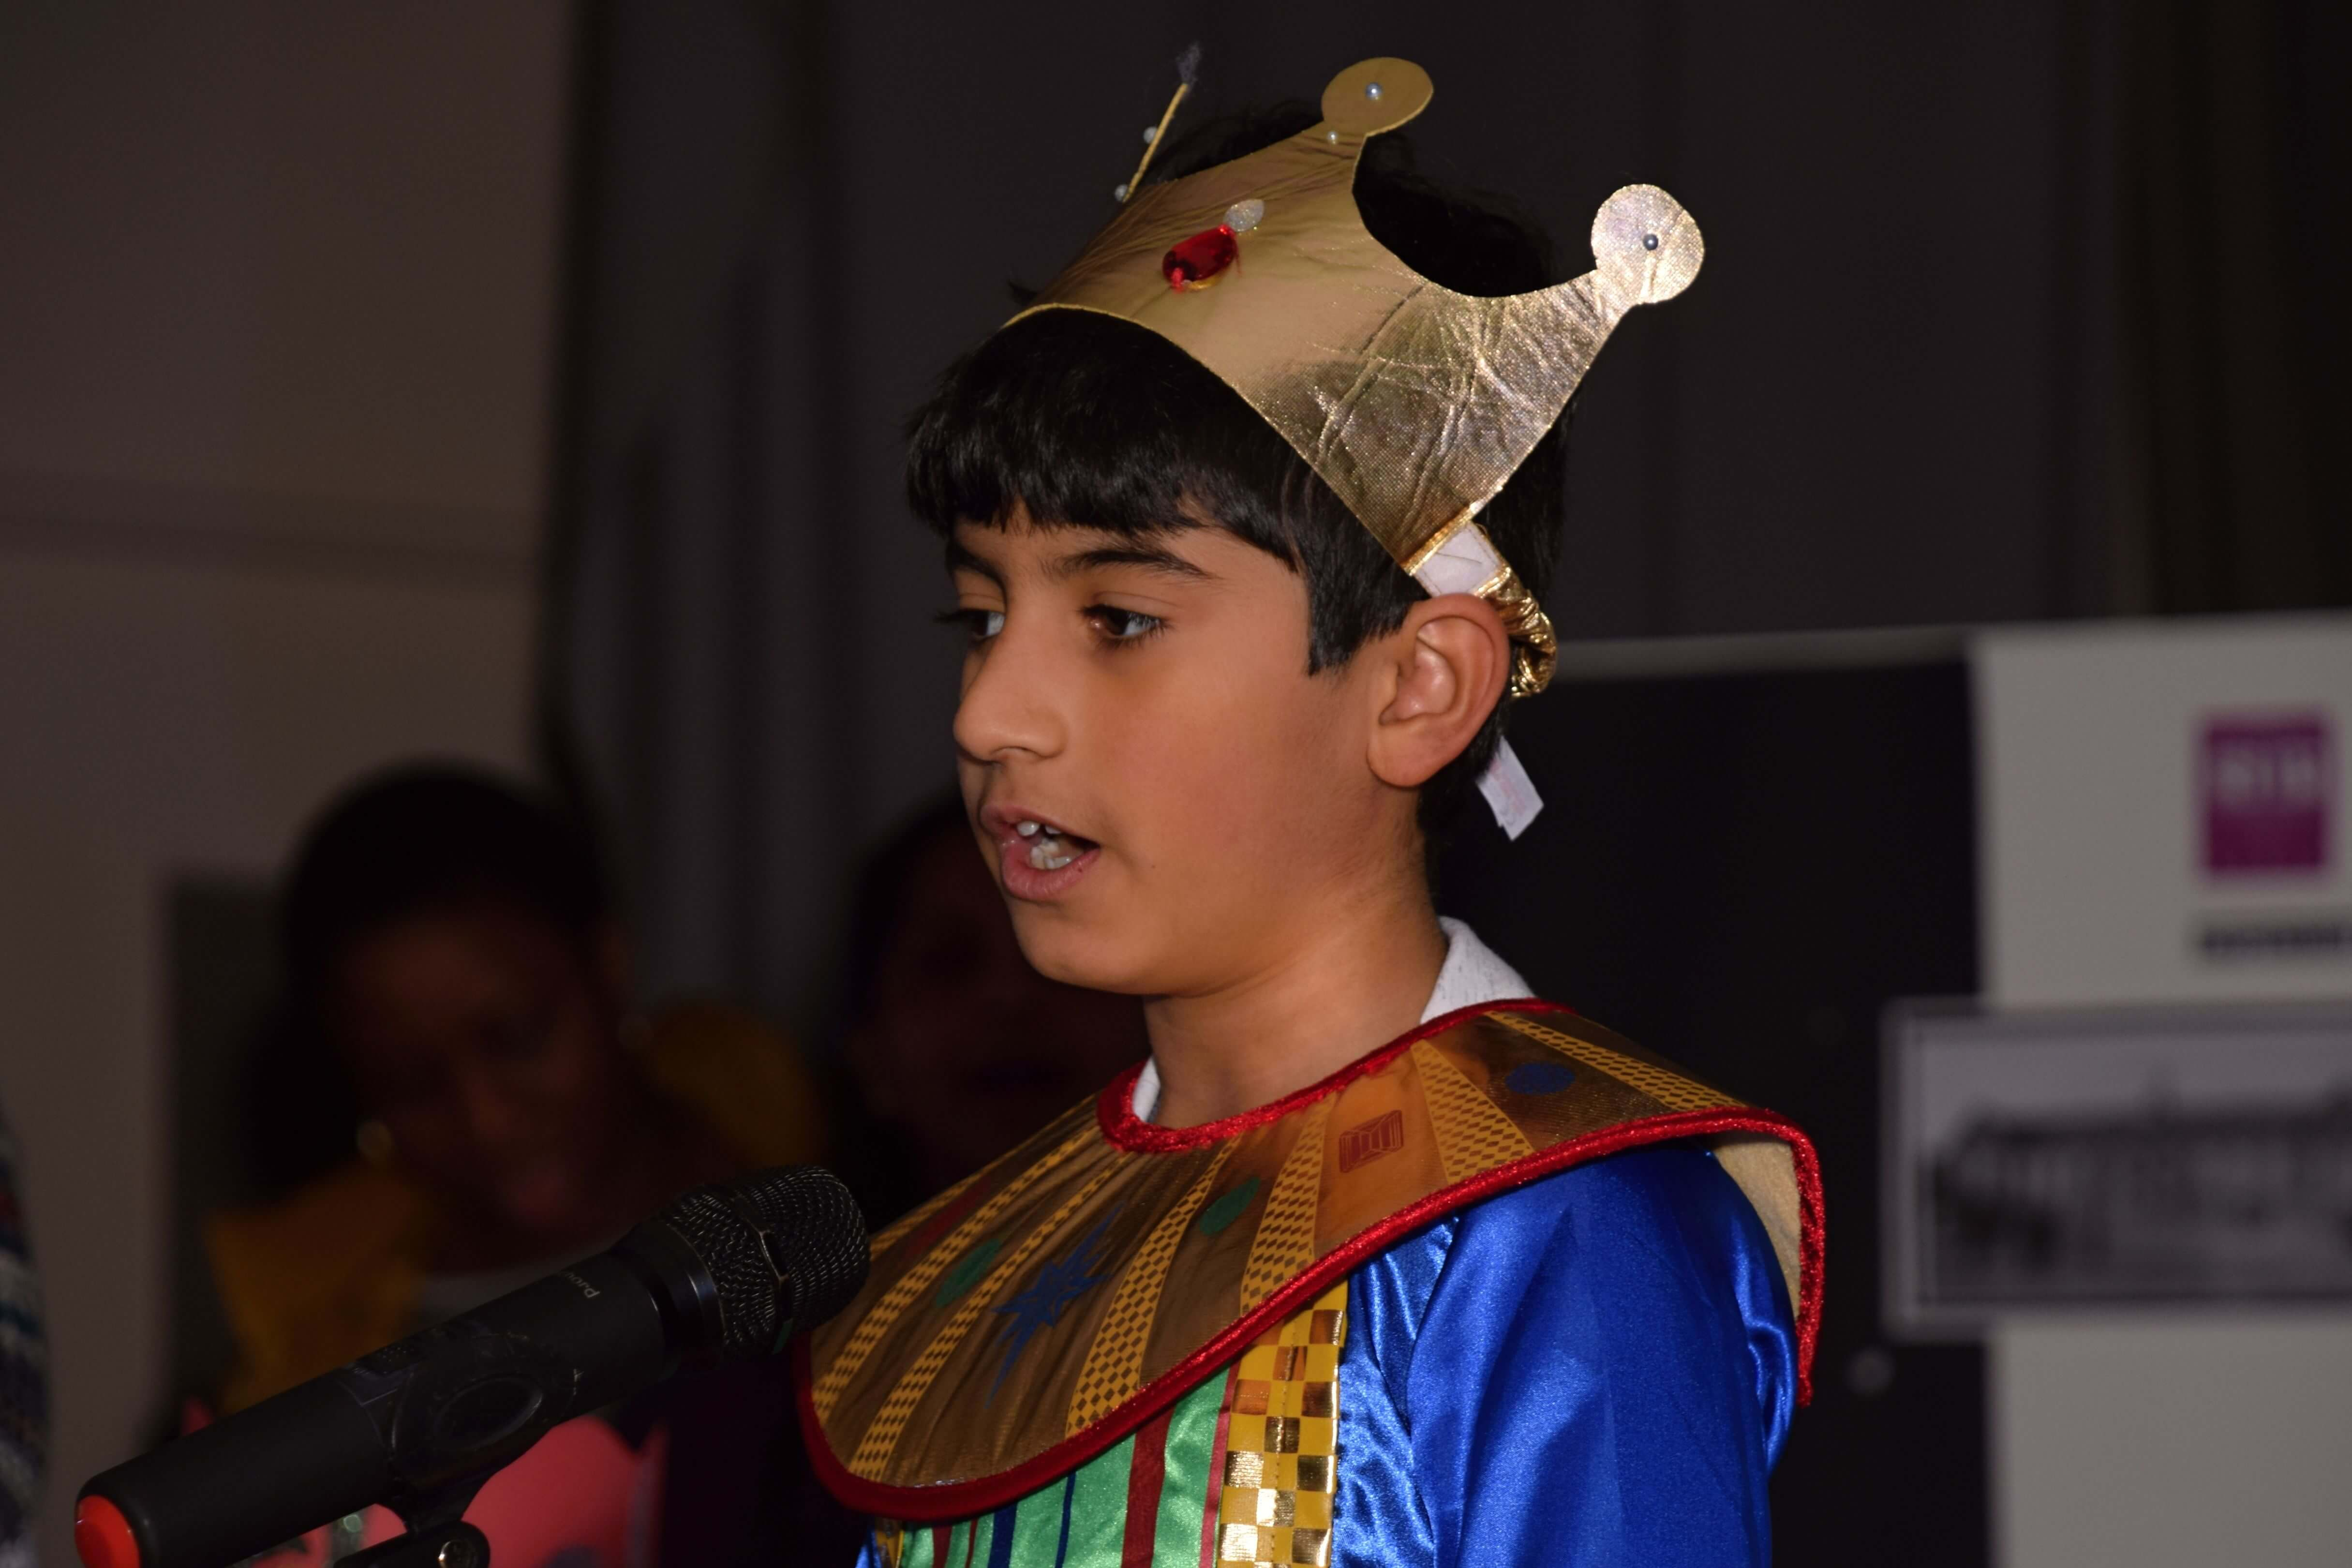 boy playing a king behind microphone